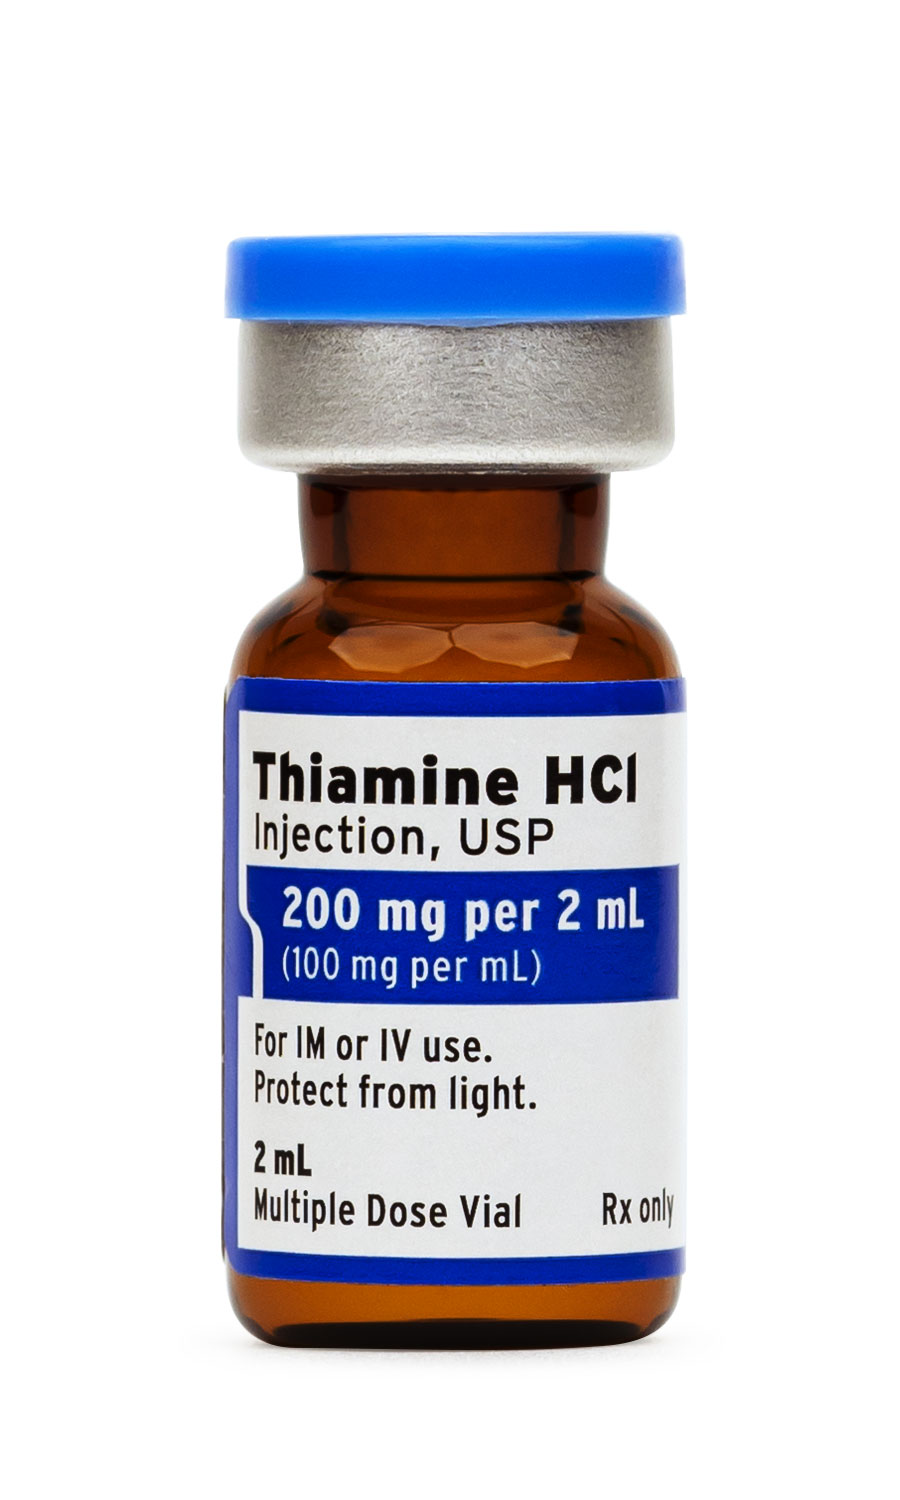 Thiamine HCl Injection